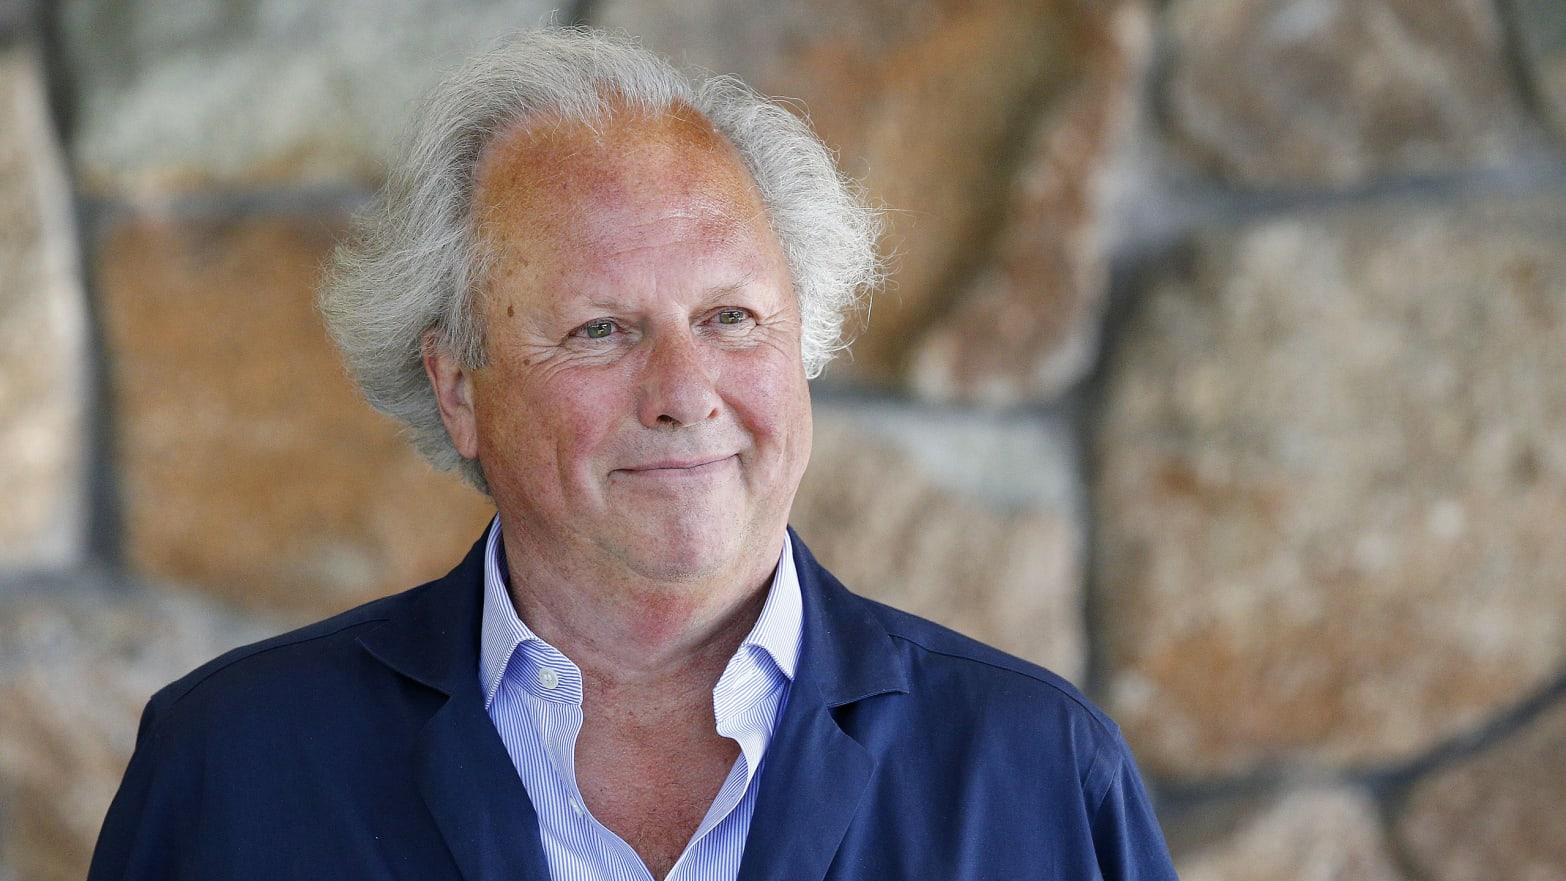 After 25 years, Graydon Carter announced he was leaving his position as editor in chief of 'Vanity Fair.'